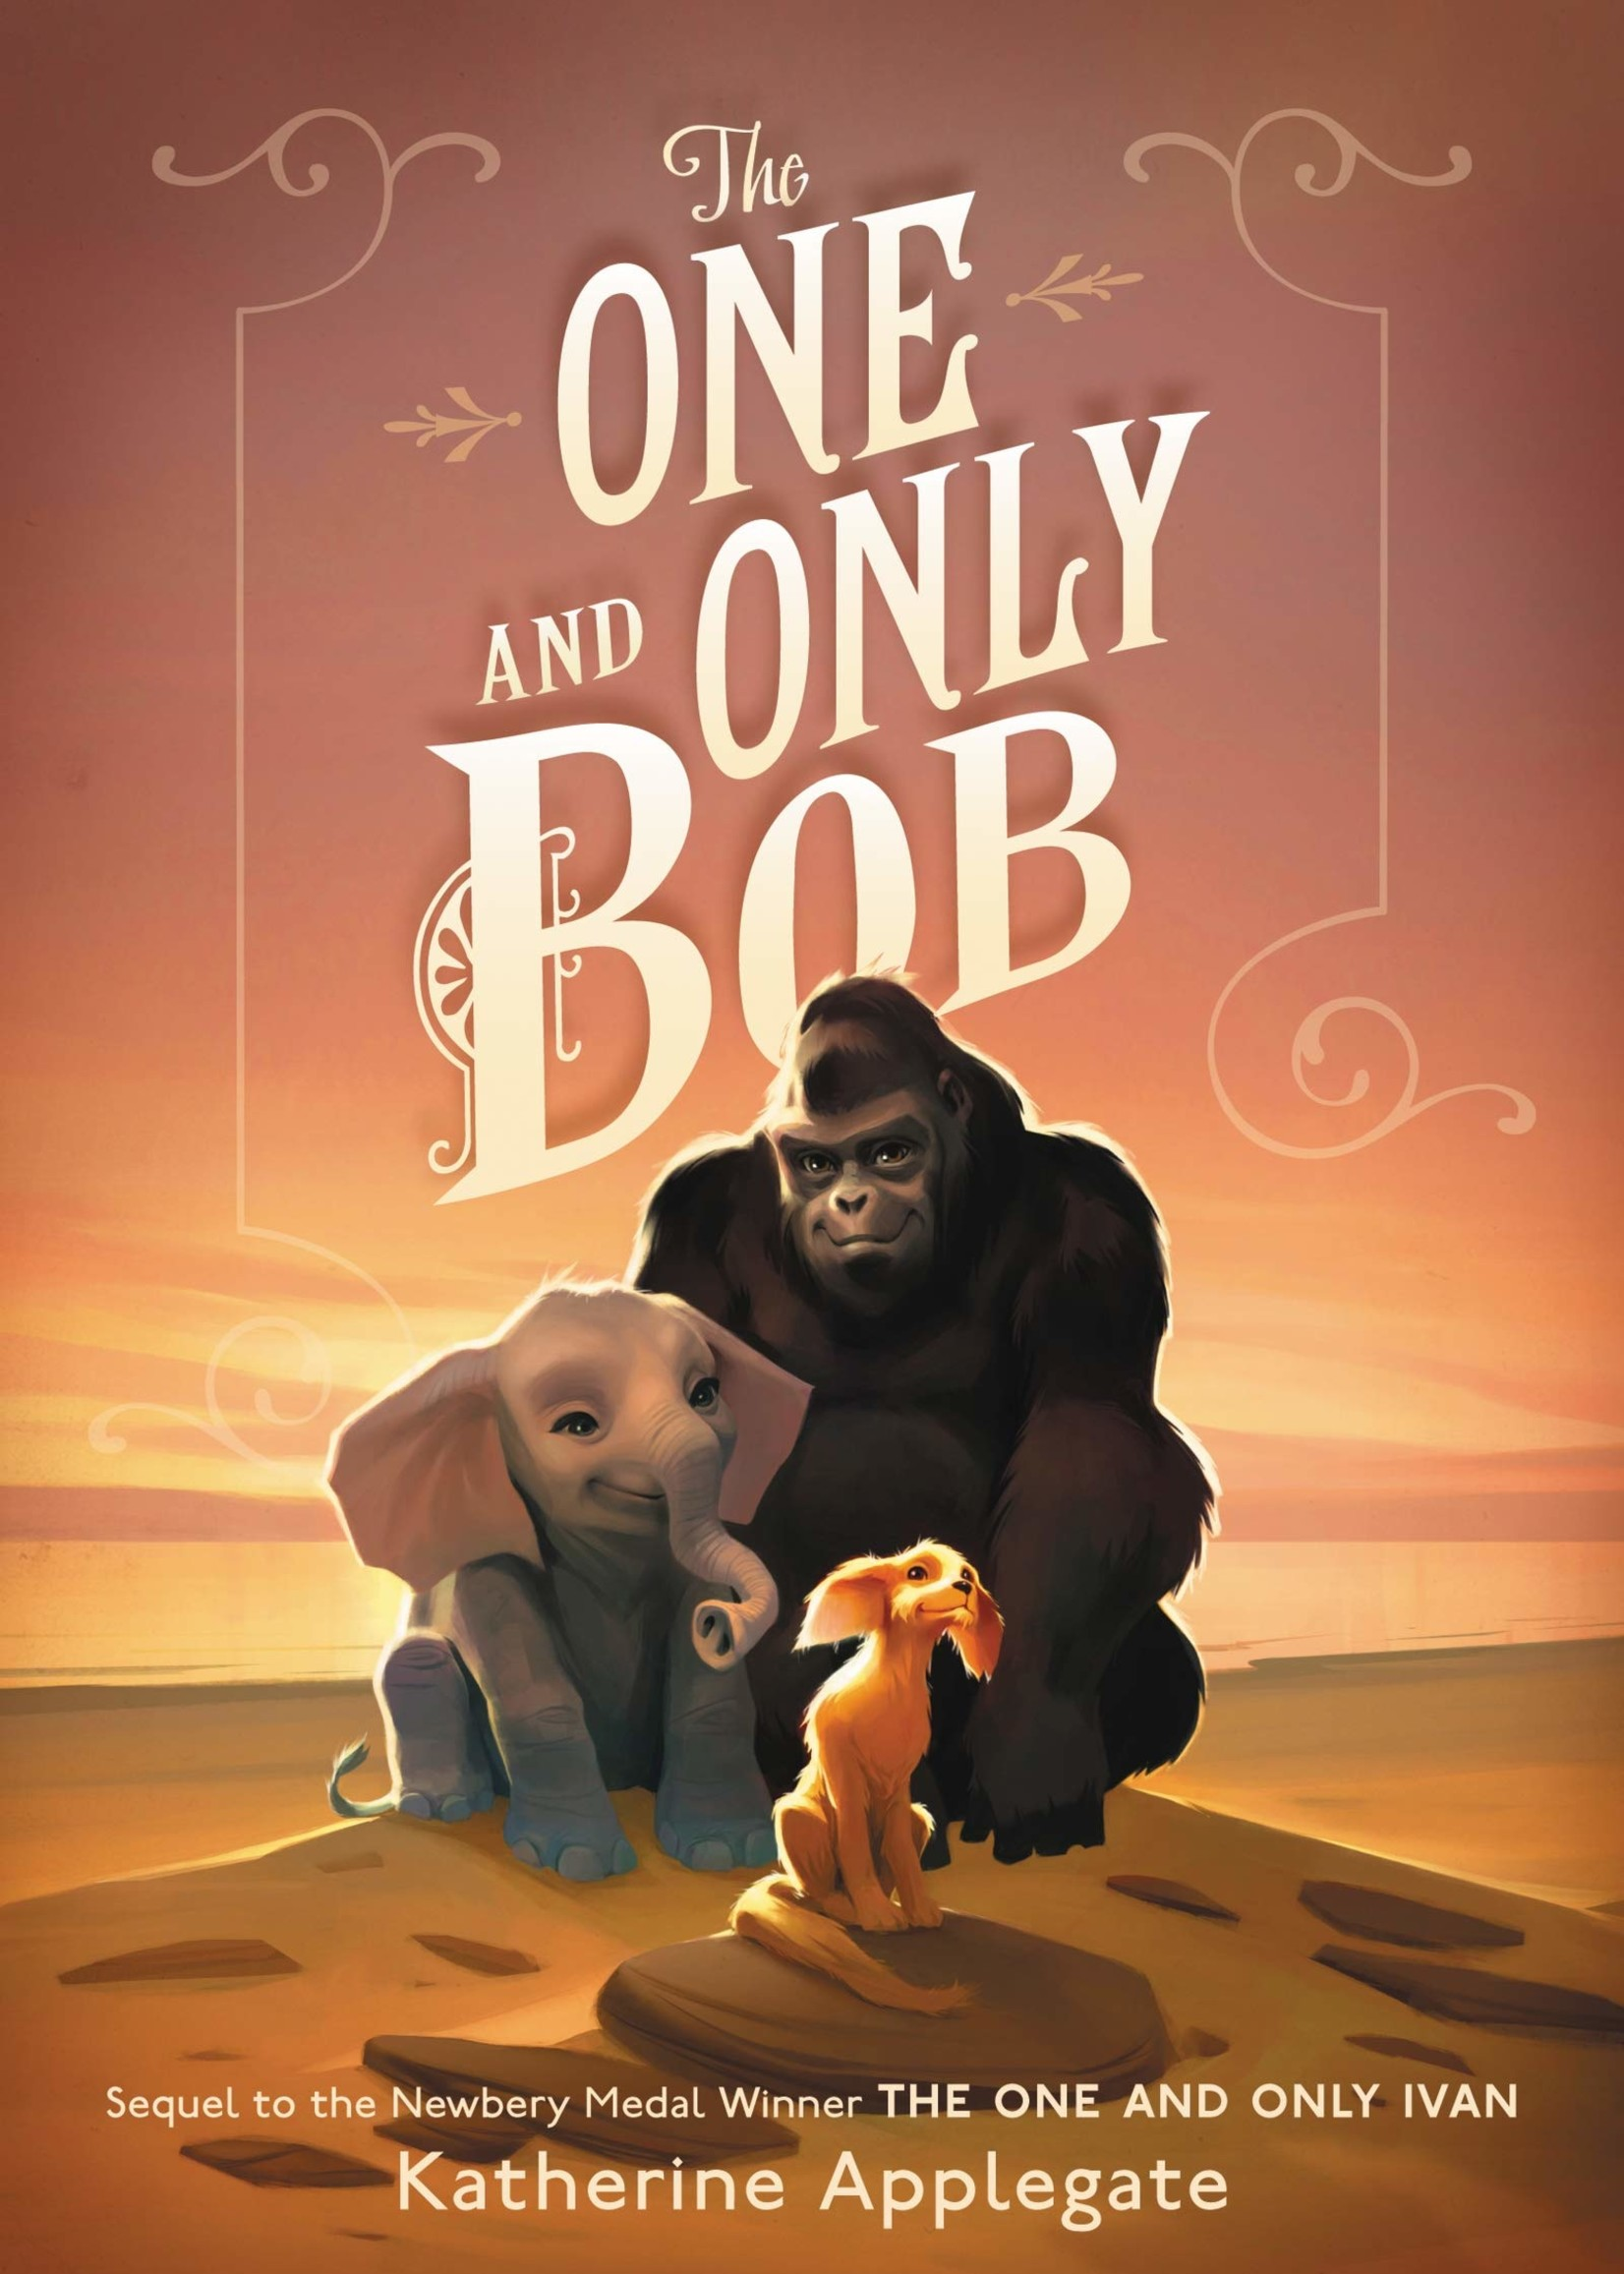 The One and Only Bob - Hardcover